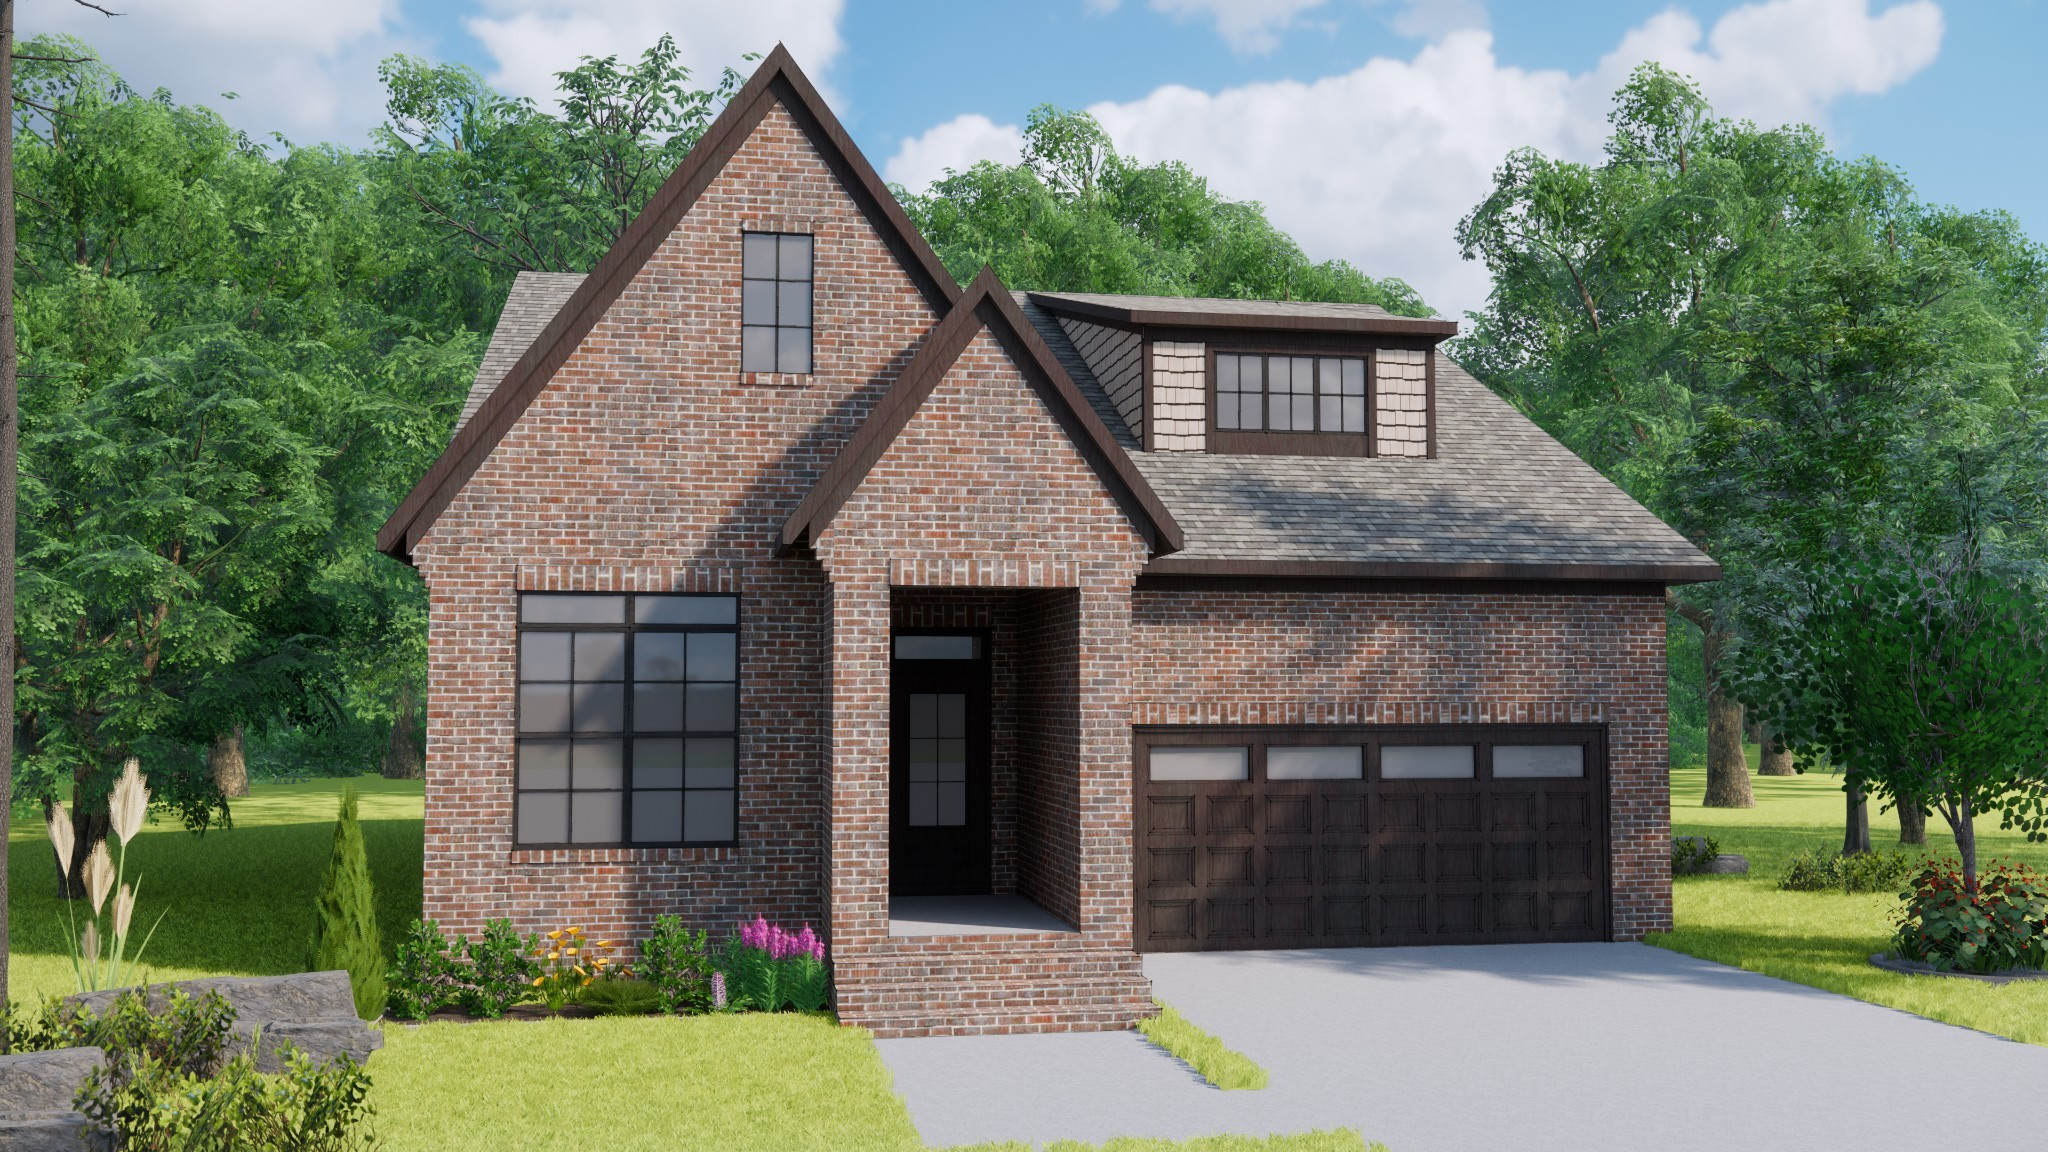 The Maggio. Come view one of five new floorplans from Landmark Homes @ Southpoint! Brentwood's newest walkable community located near the corner of Pettus Rd / Nolensville Rd. Come in and pick your lot, customize your new home, and close by the end of the year!